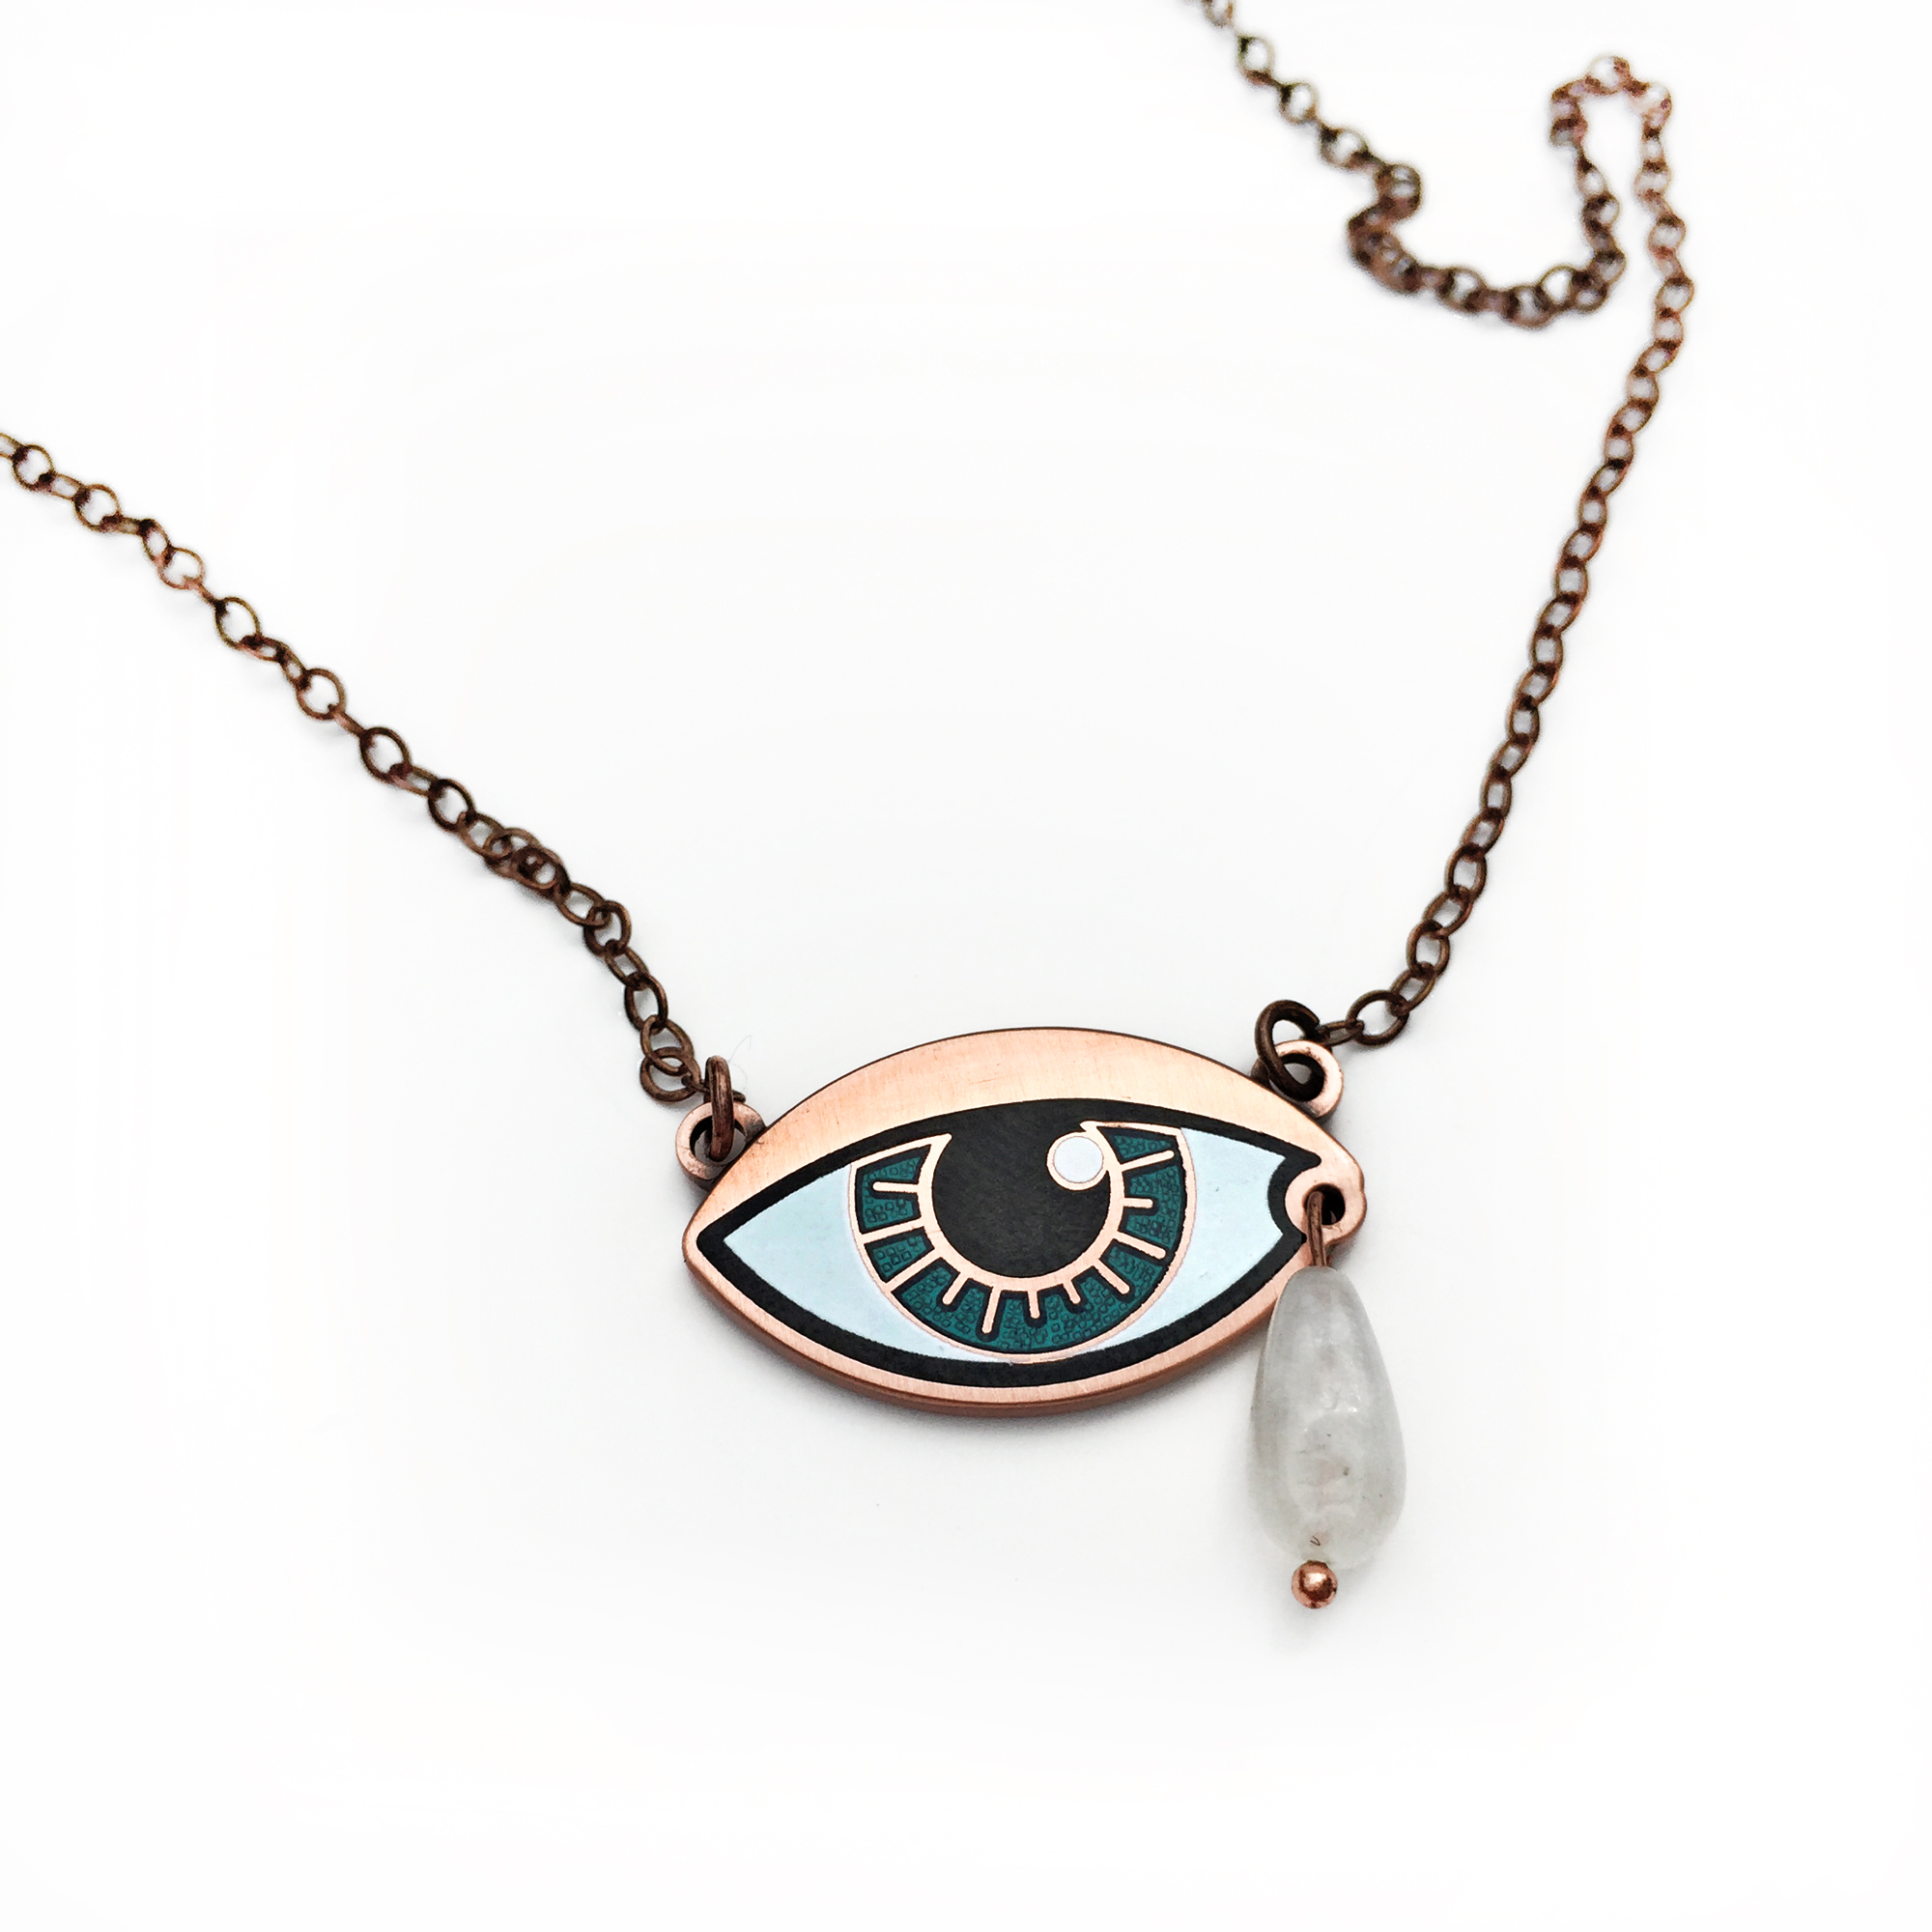 Eye necklace with moonstone teardrop